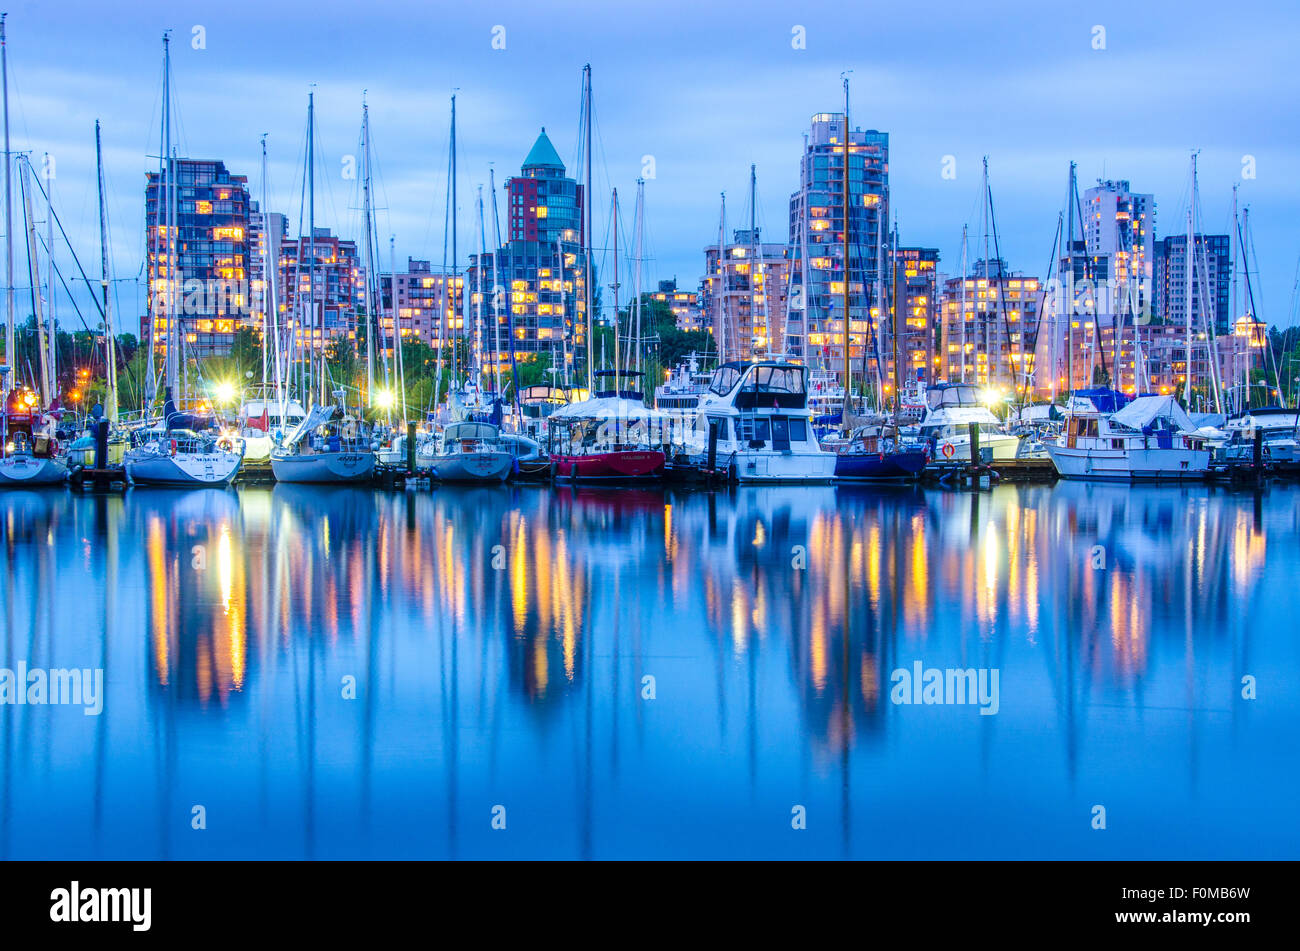 Water reflections in Vancouver of harbour buildings and boats. - Stock Image